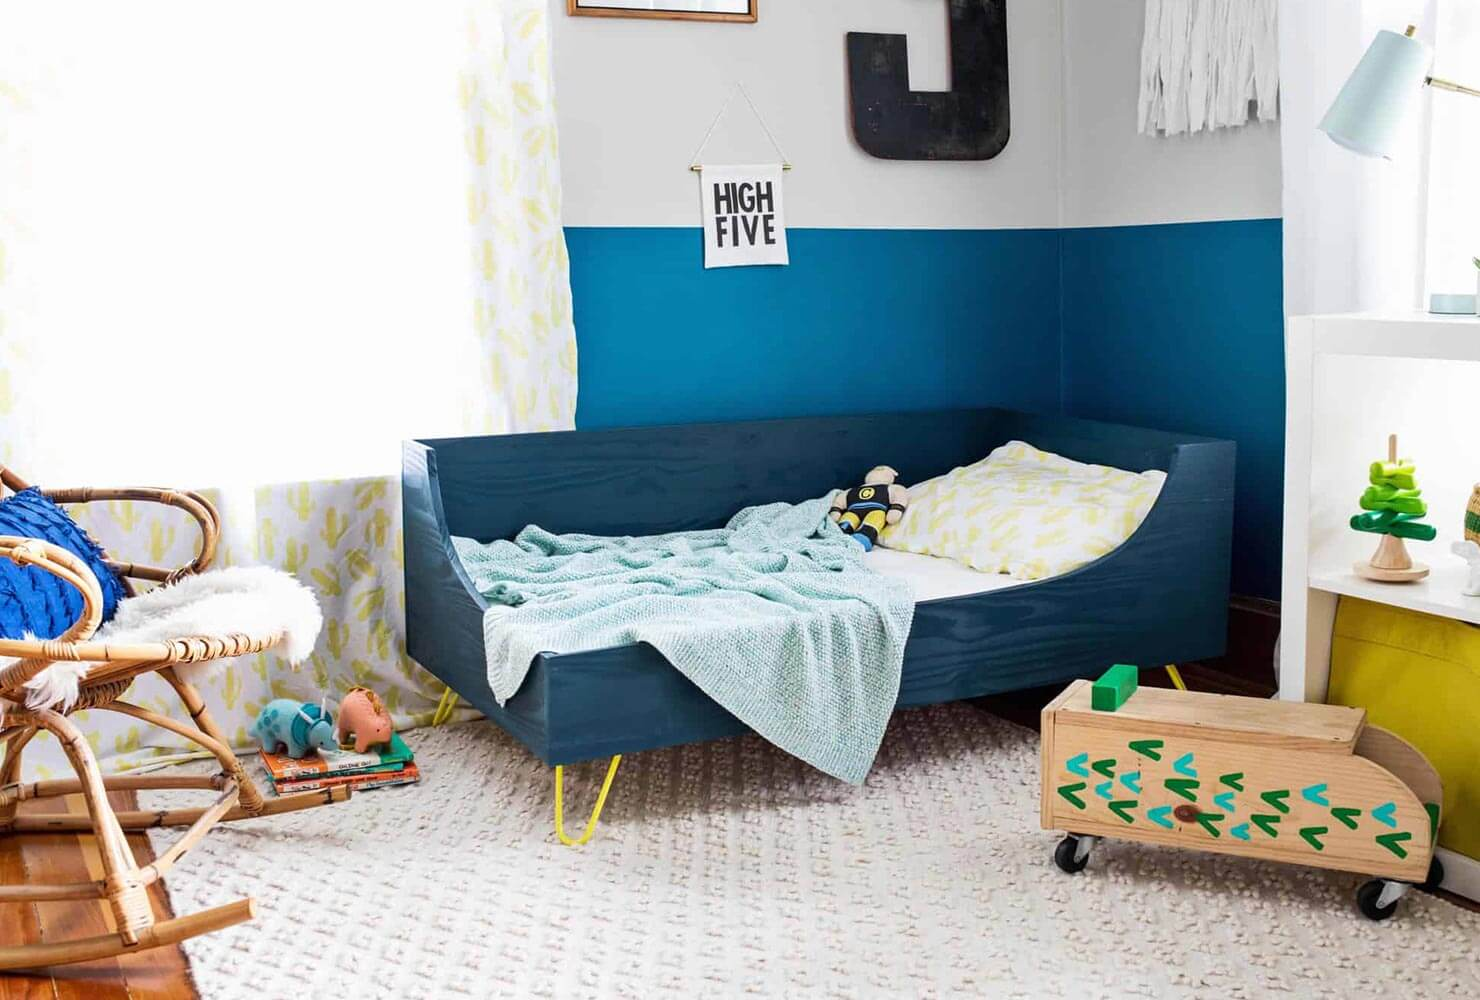 Themed Toddler Beds 24 Toddler Room Ideas That Will Make You Wish You Were A Kid